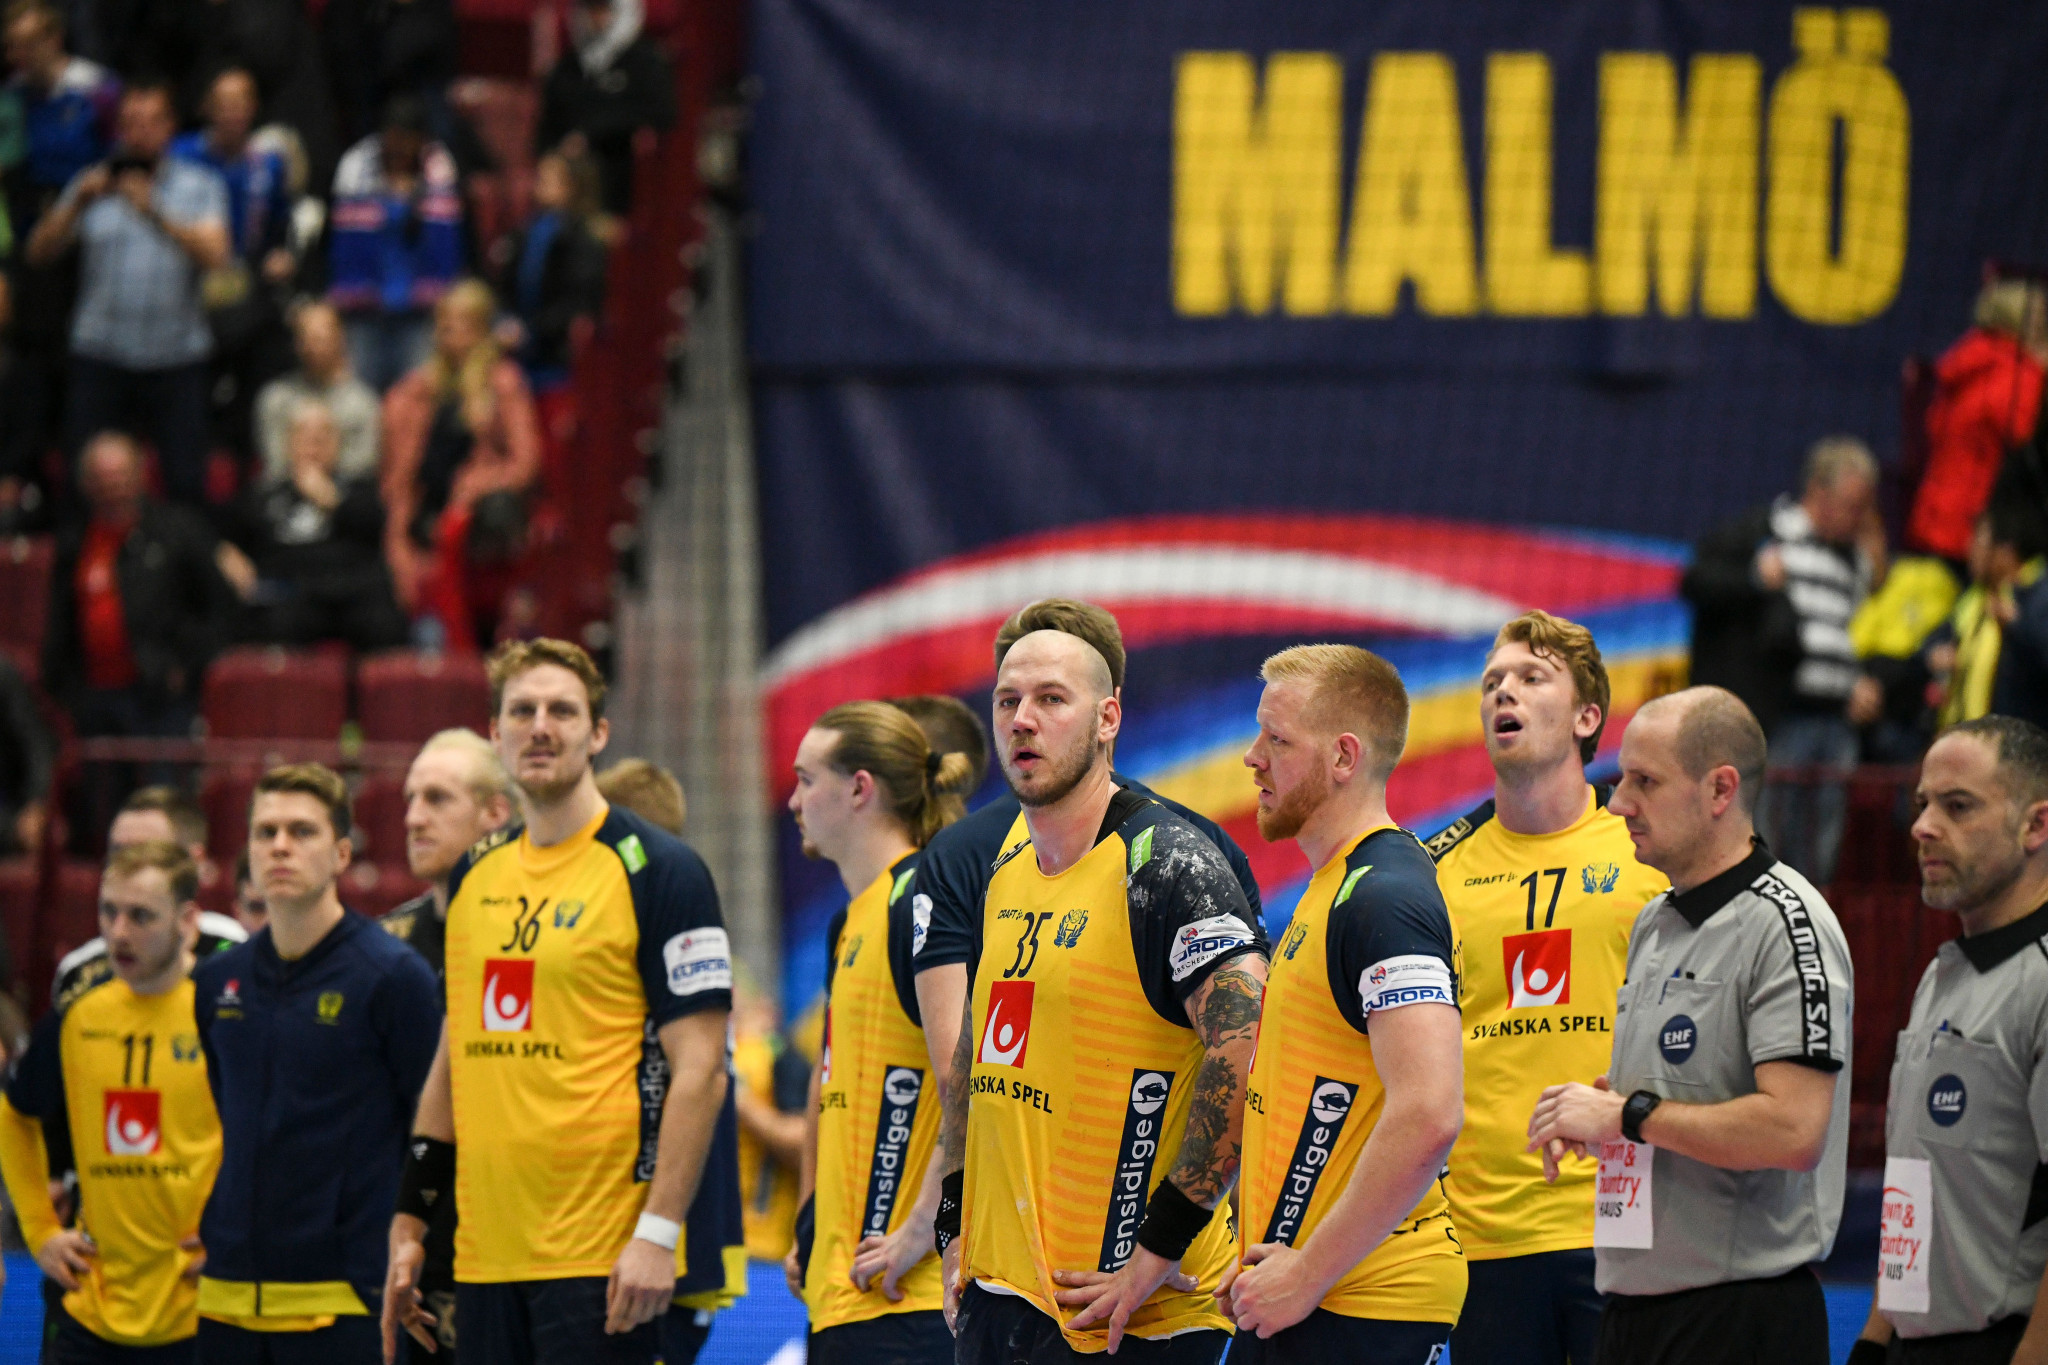 EHF Final4 handball competition postponed to December due to COVID-19 crisis